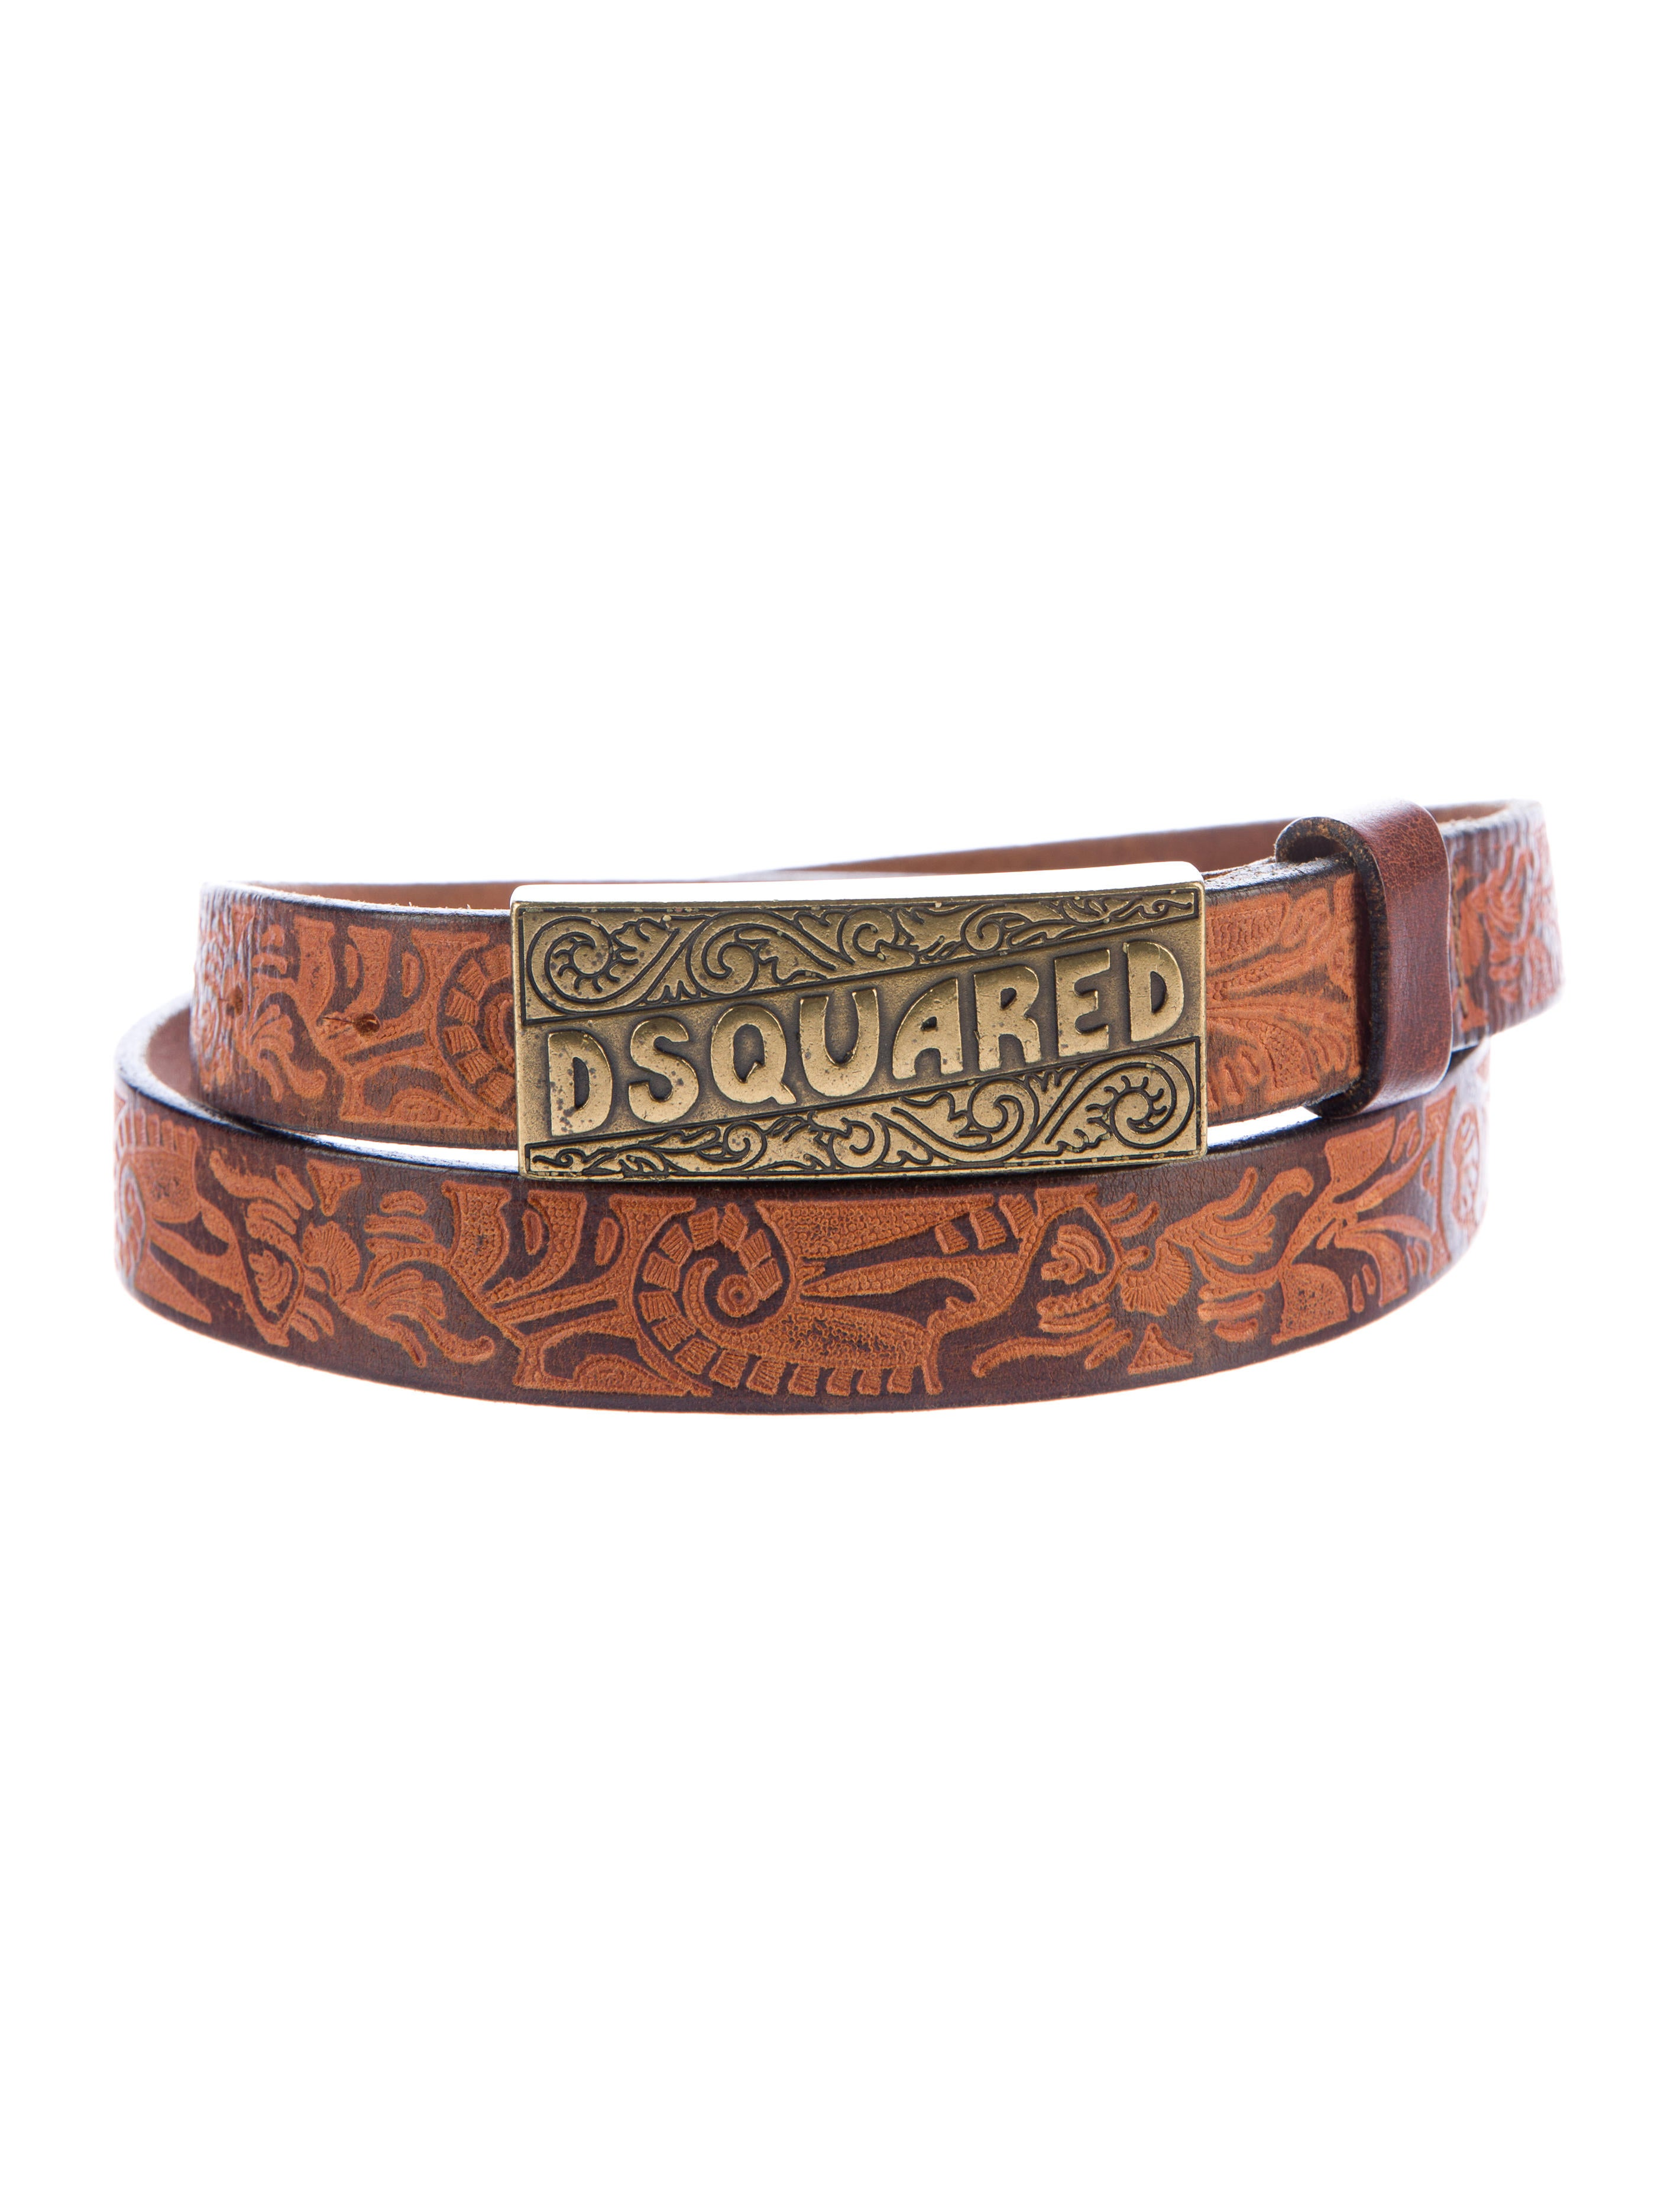 dsquared 178 embossed leather belt accessories dsq25528